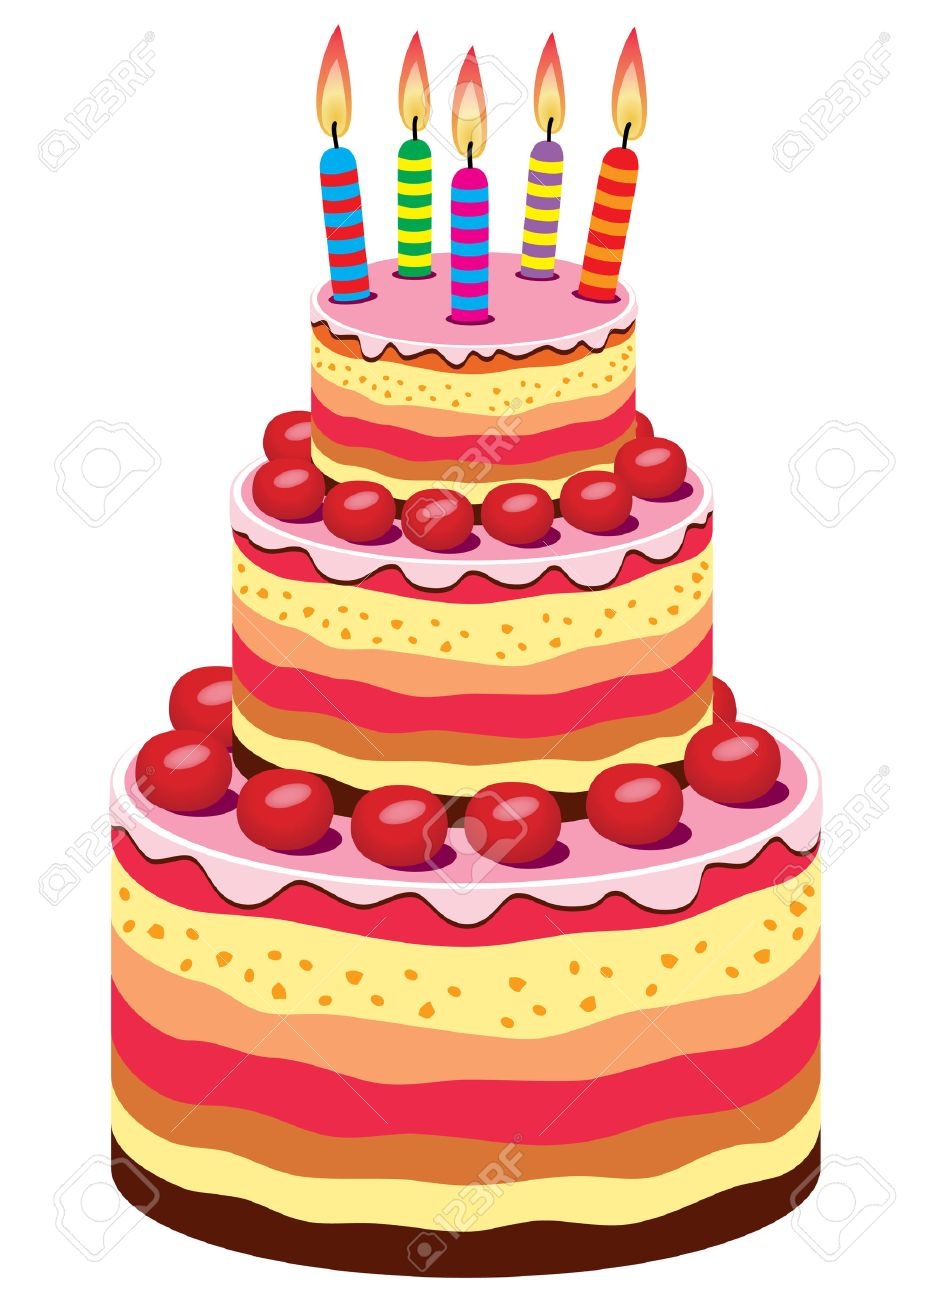 Big Birthday Cake With Burning Candles And Fruits Stock Vector